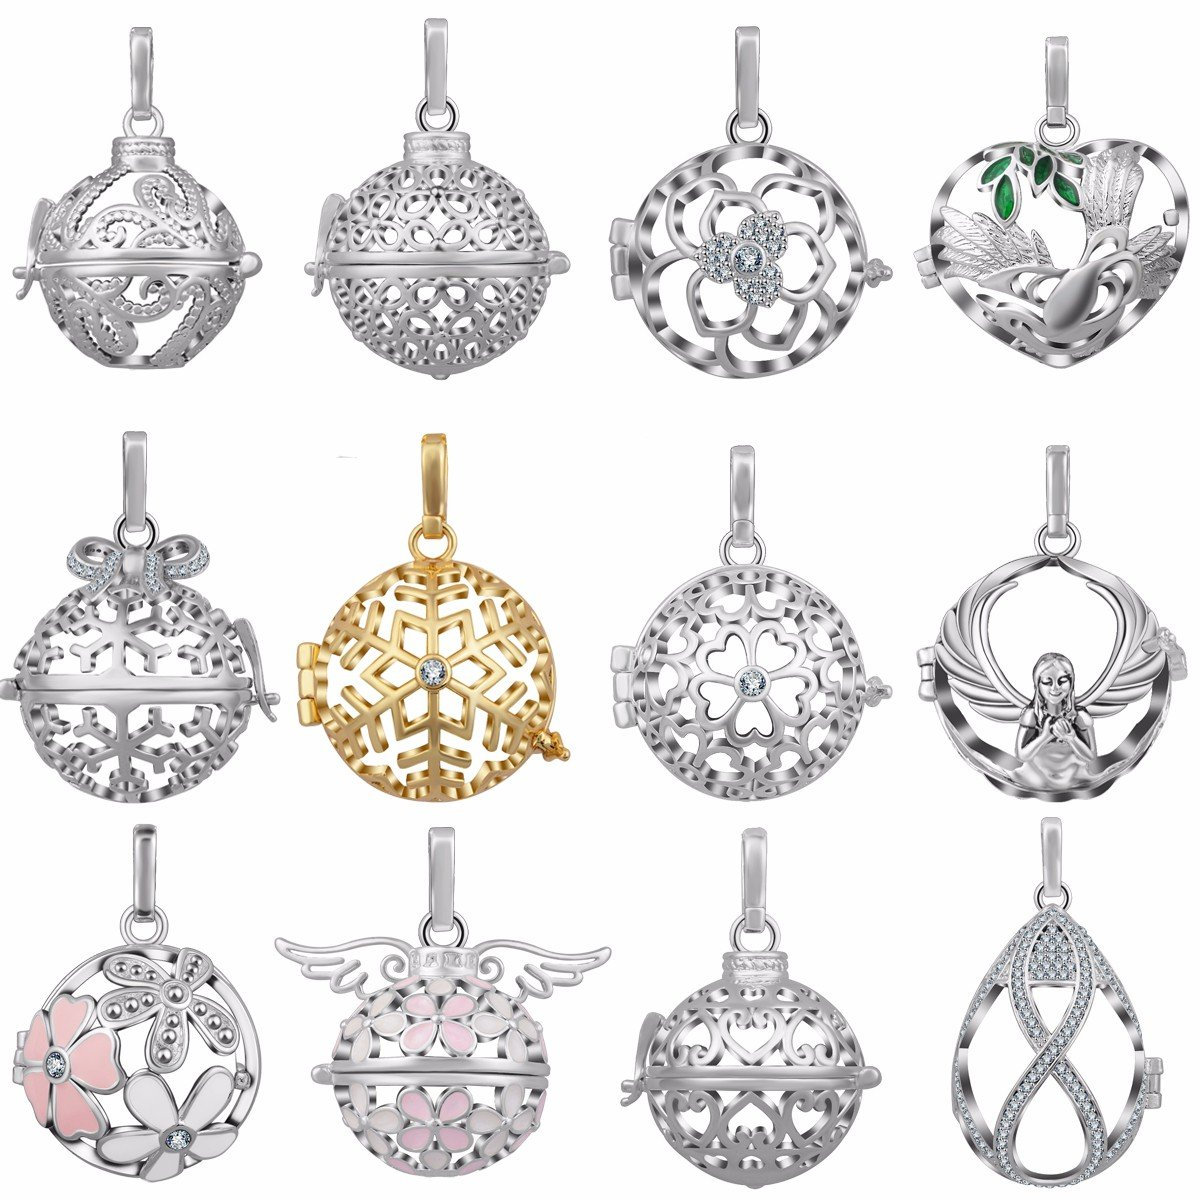 EUDORA 12pcs New Lockets Silver Plated Lockets Pendant Necklace for 20mm Chime Ball